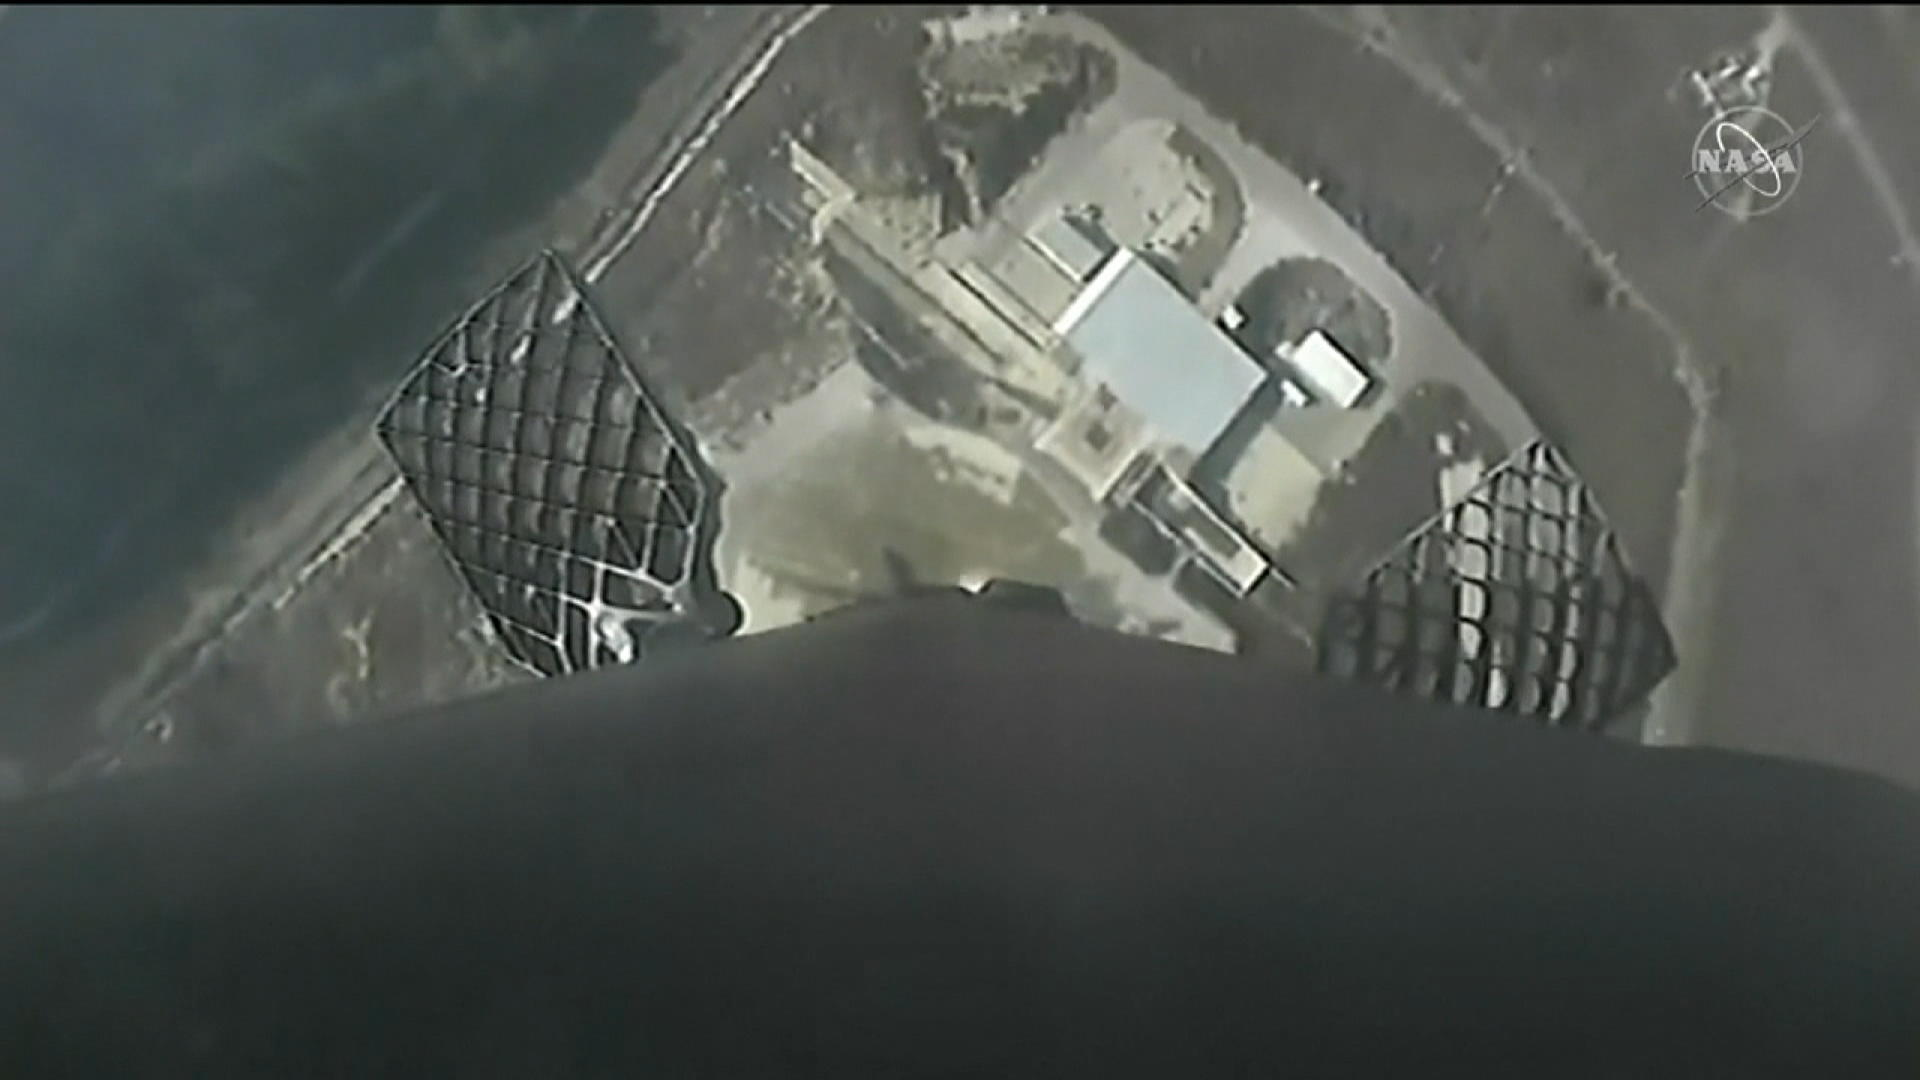 Watch: First Stage of SpaceX Rocket Comes in for Perfect Landing